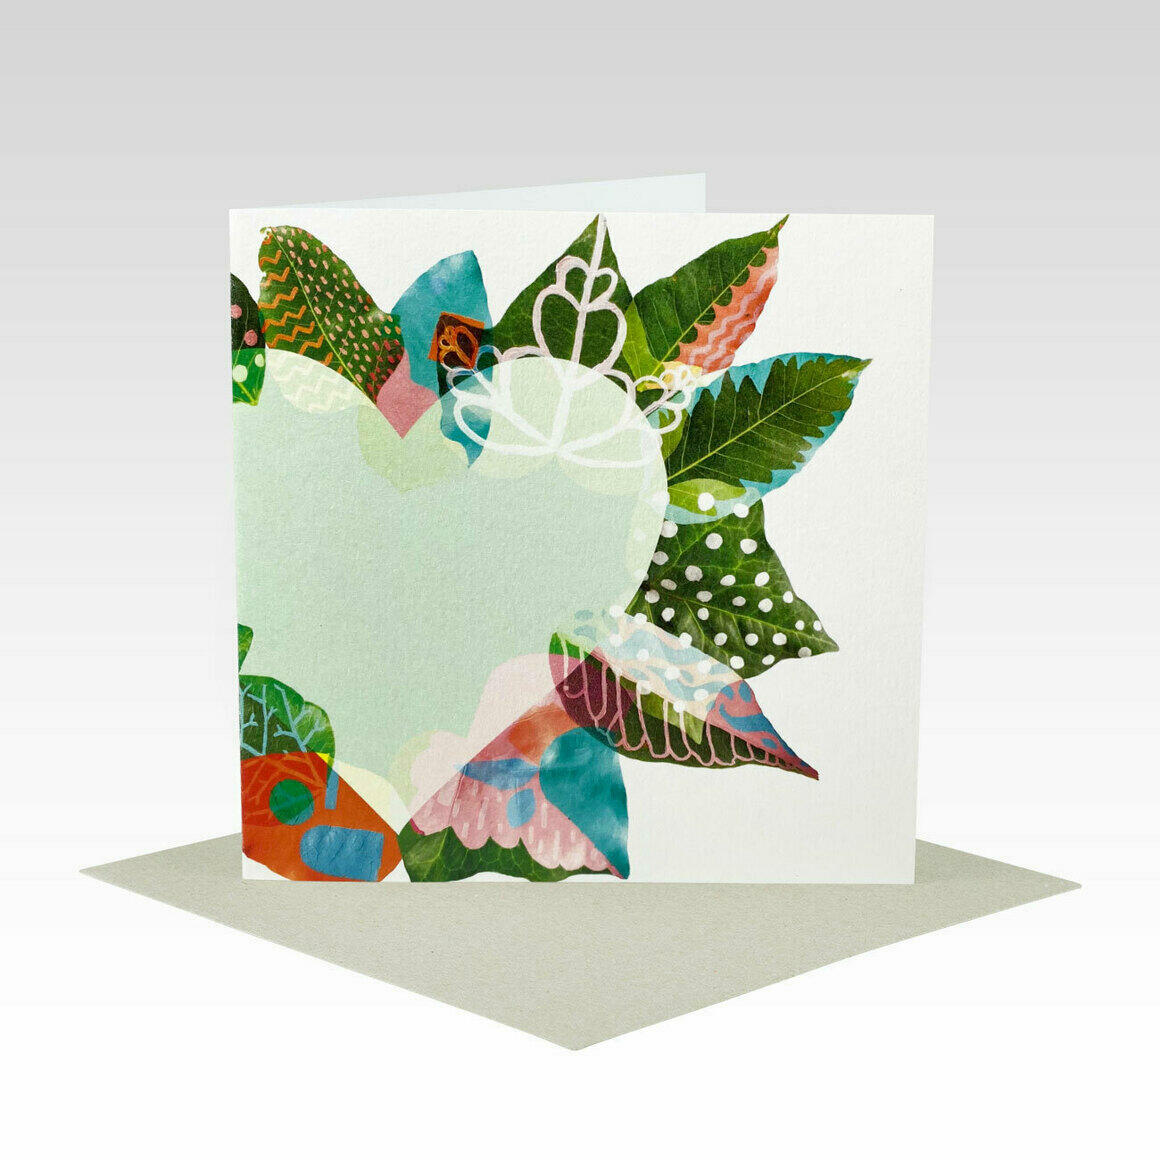 GEN075 – Painted Leaves Heart   Trada Marketplace